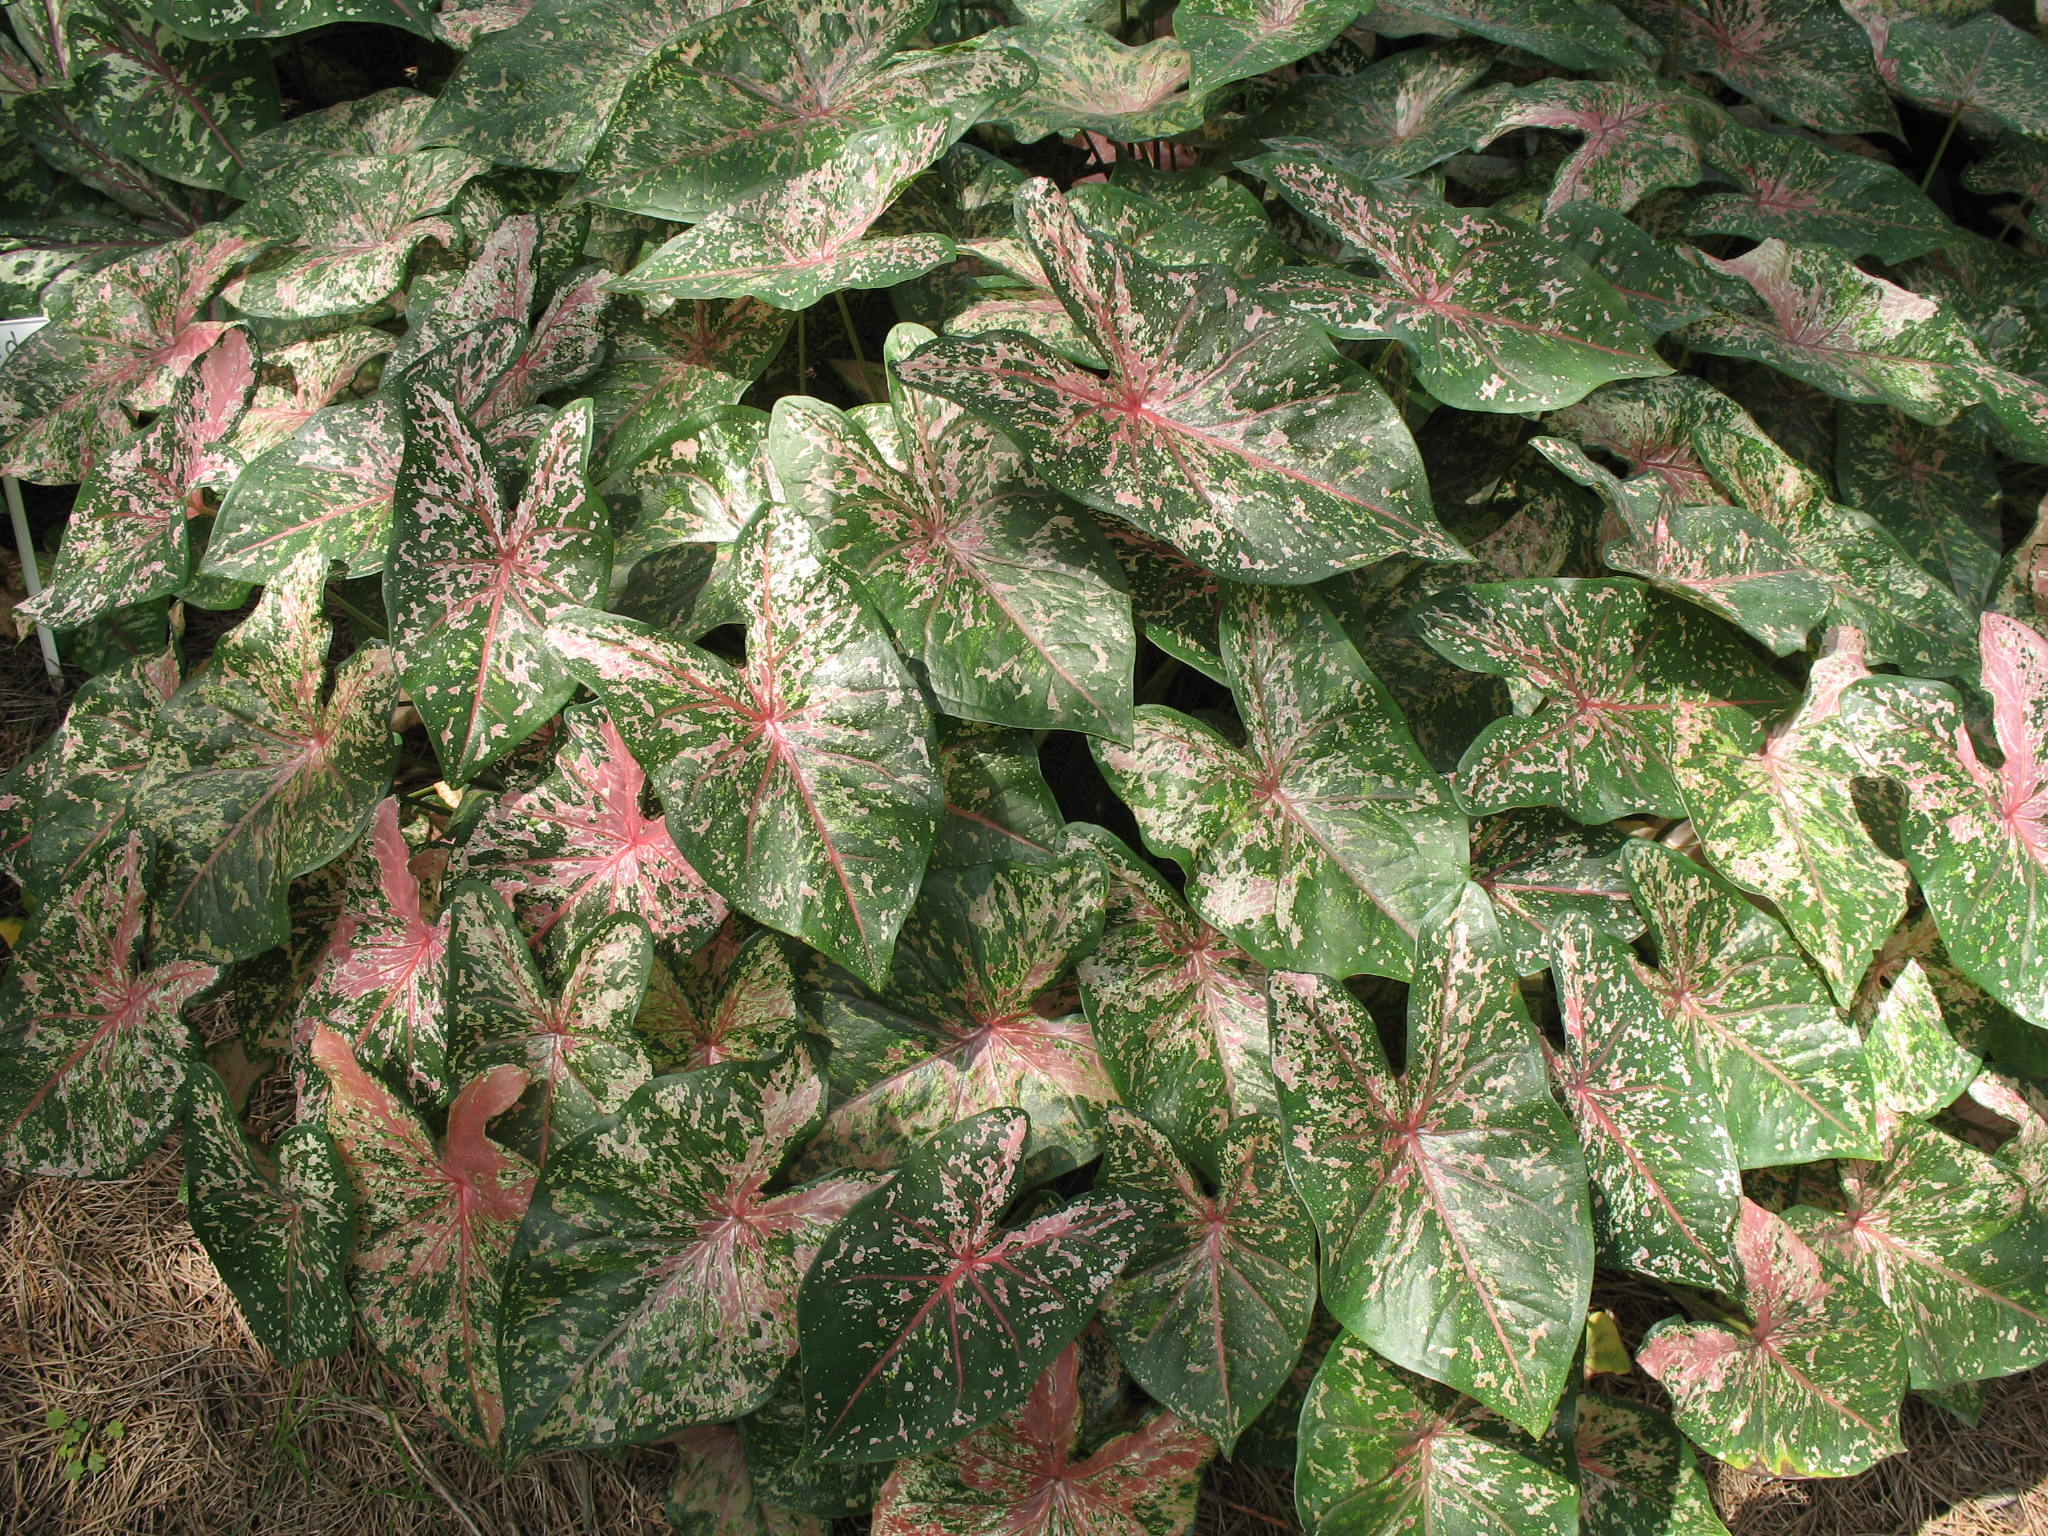 Caladium bicolor 'Florida Beauty'   / Caladium bicolor 'Florida Beauty'